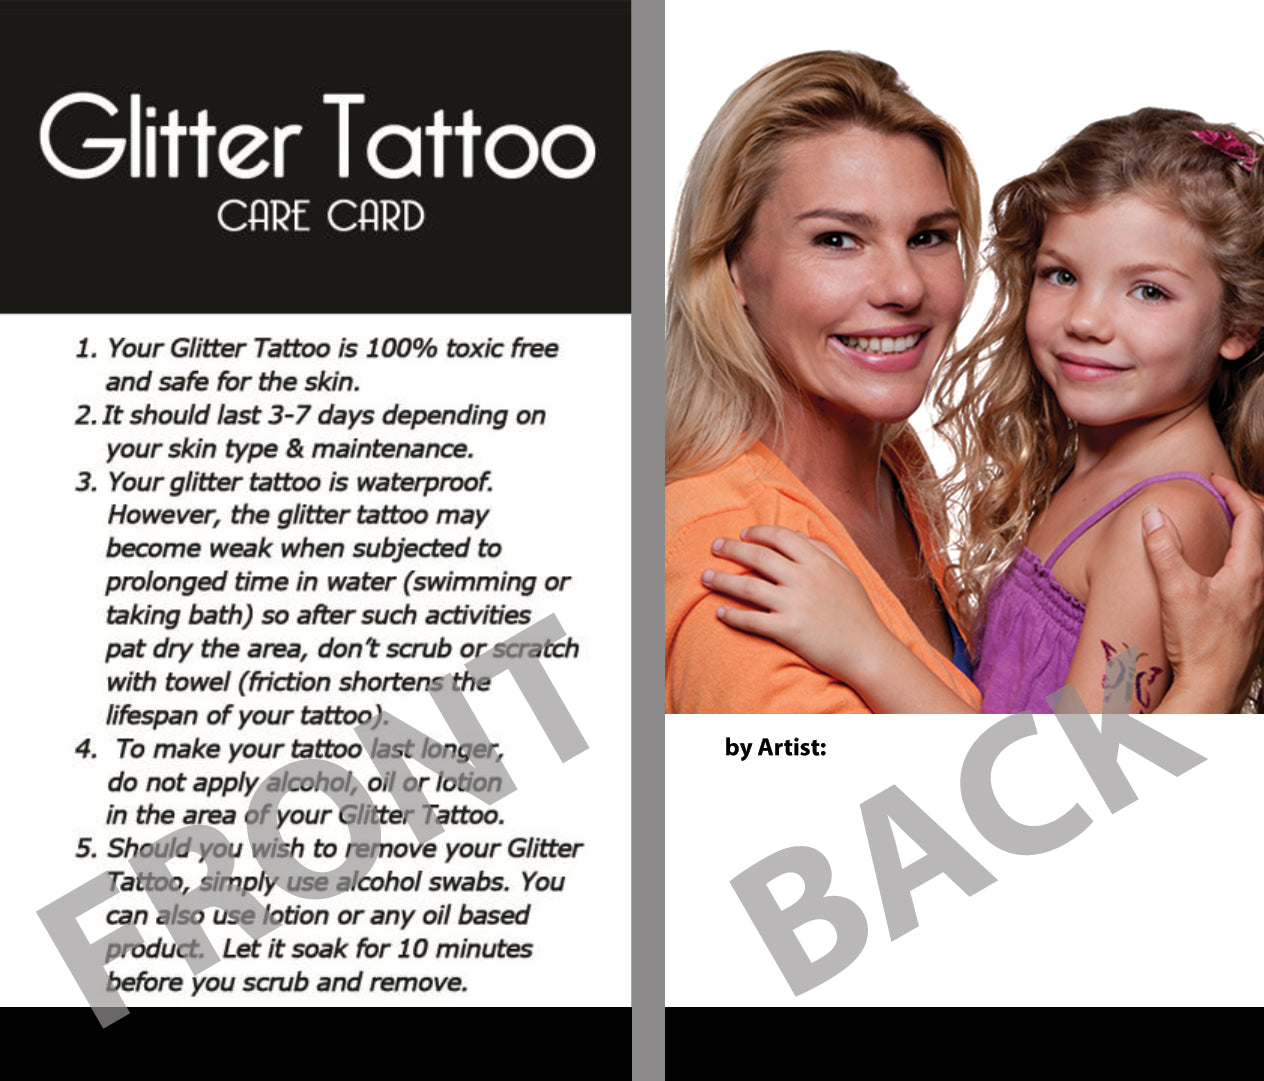 Glitter tattoo store coupons